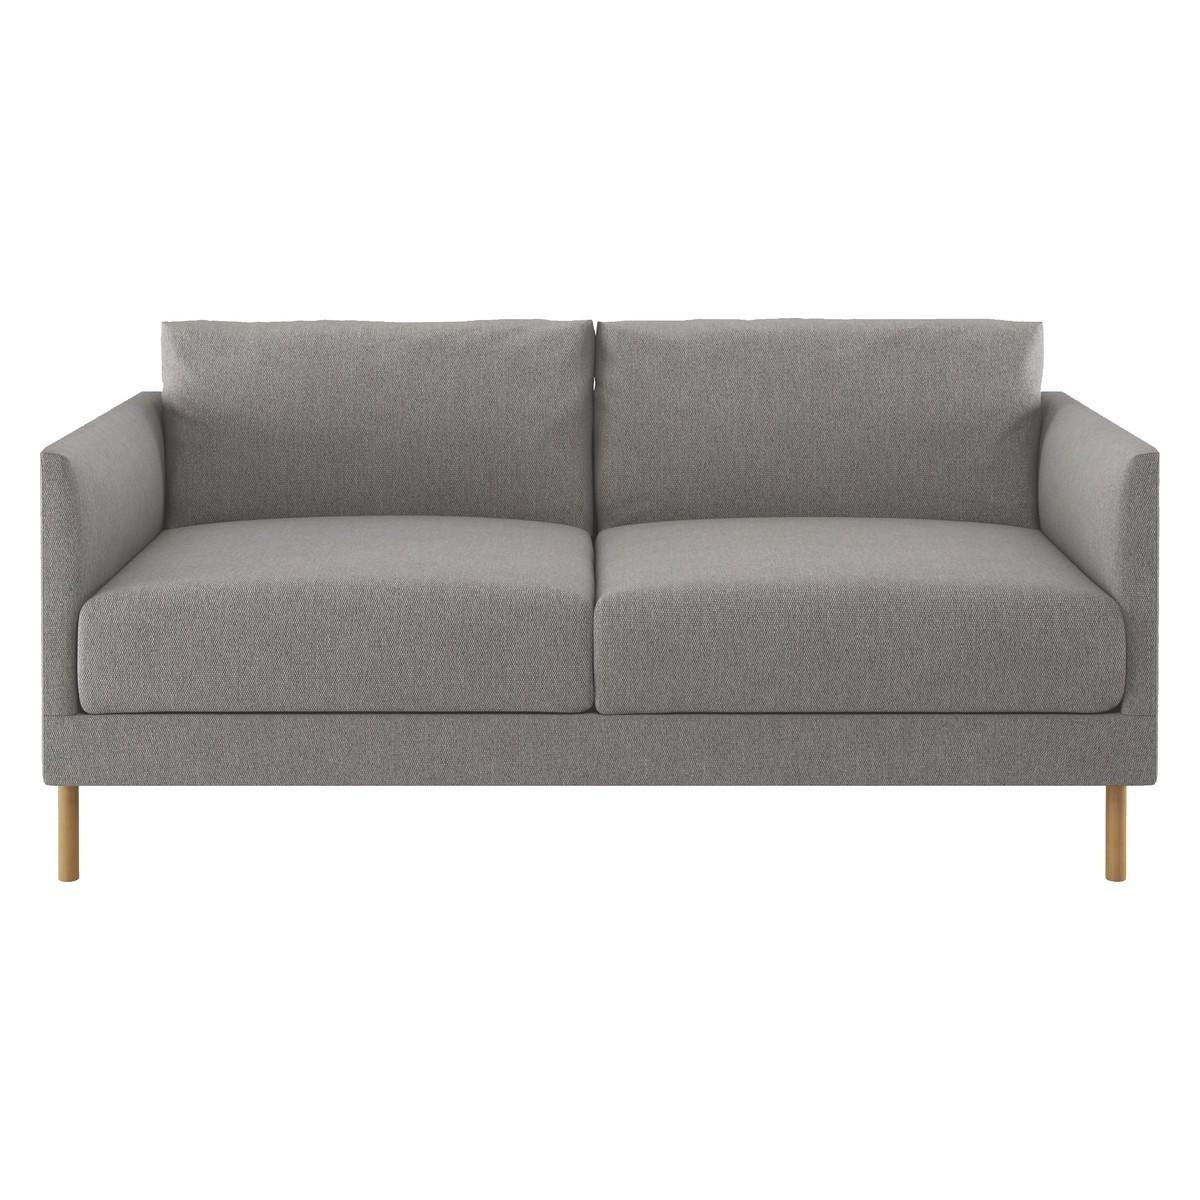 Hyde Grey Fabric 2 Seater Sofa, Wooden Legs | Buy Now At Habitat Uk Intended For Two Seater Sofas (View 8 of 20)